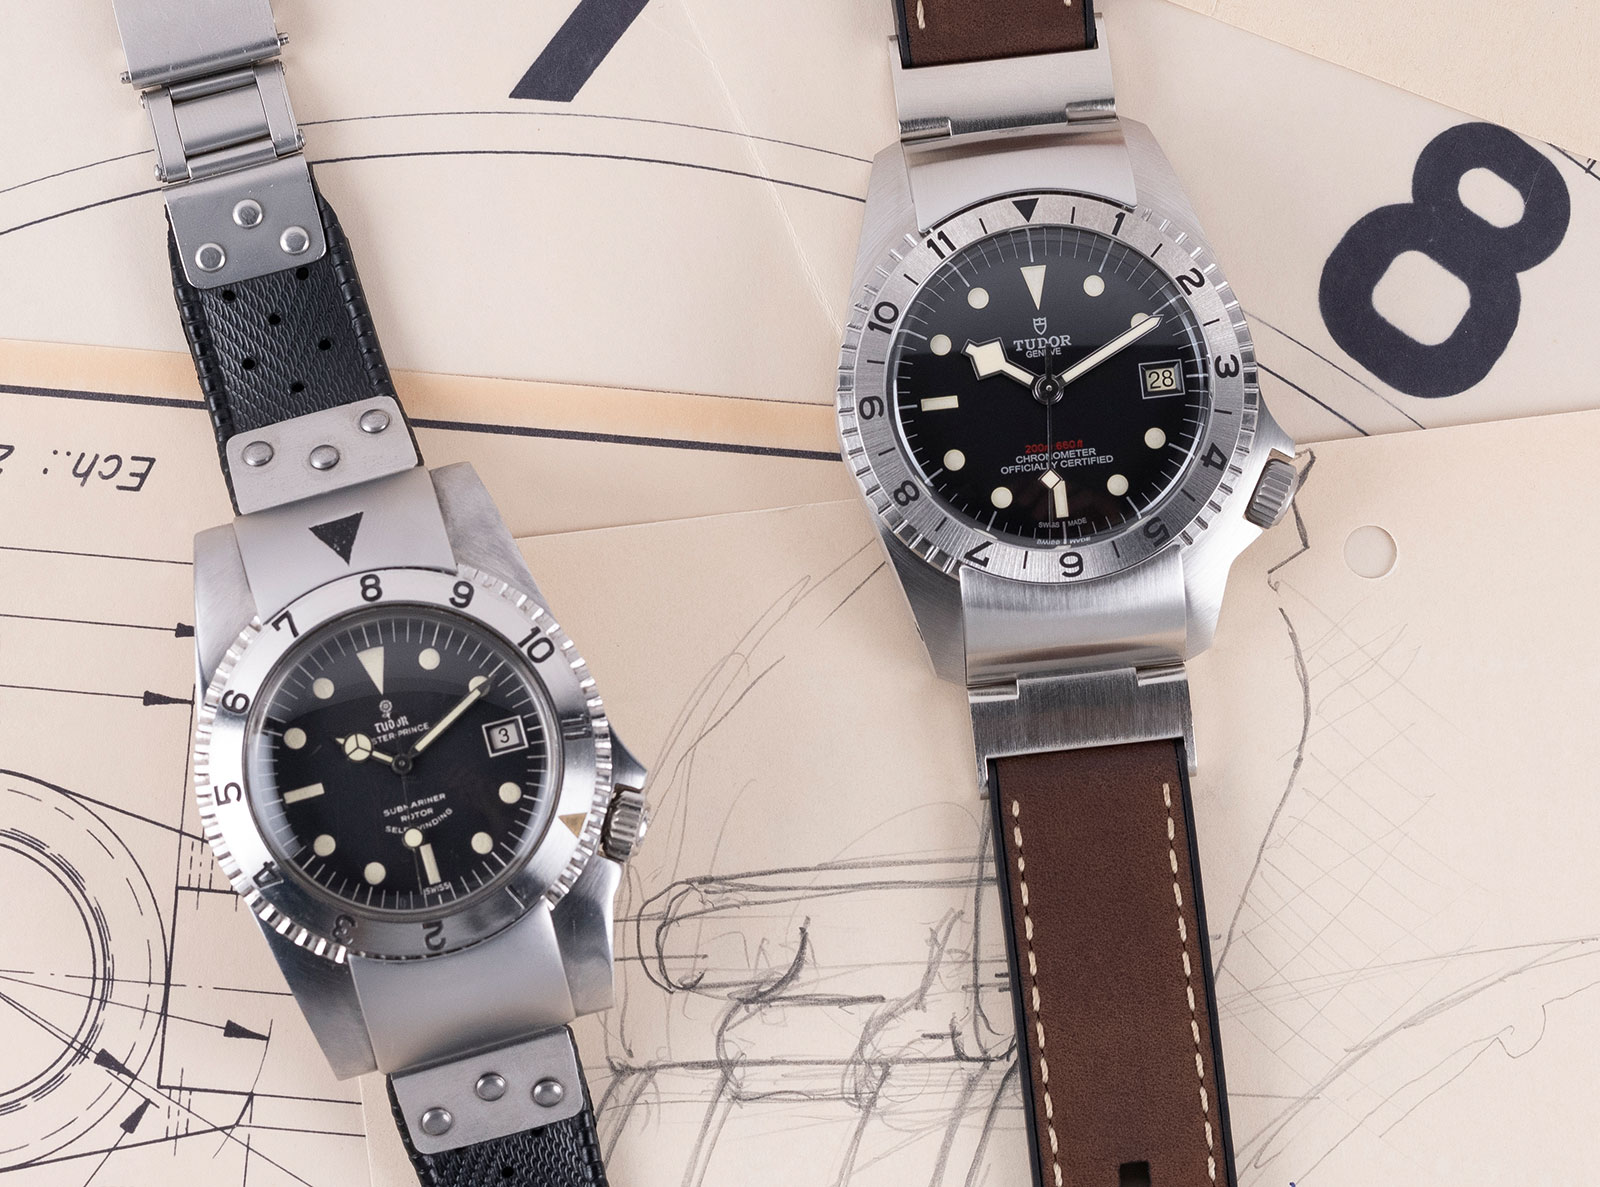 Tudor Black Bay P01 original prototype